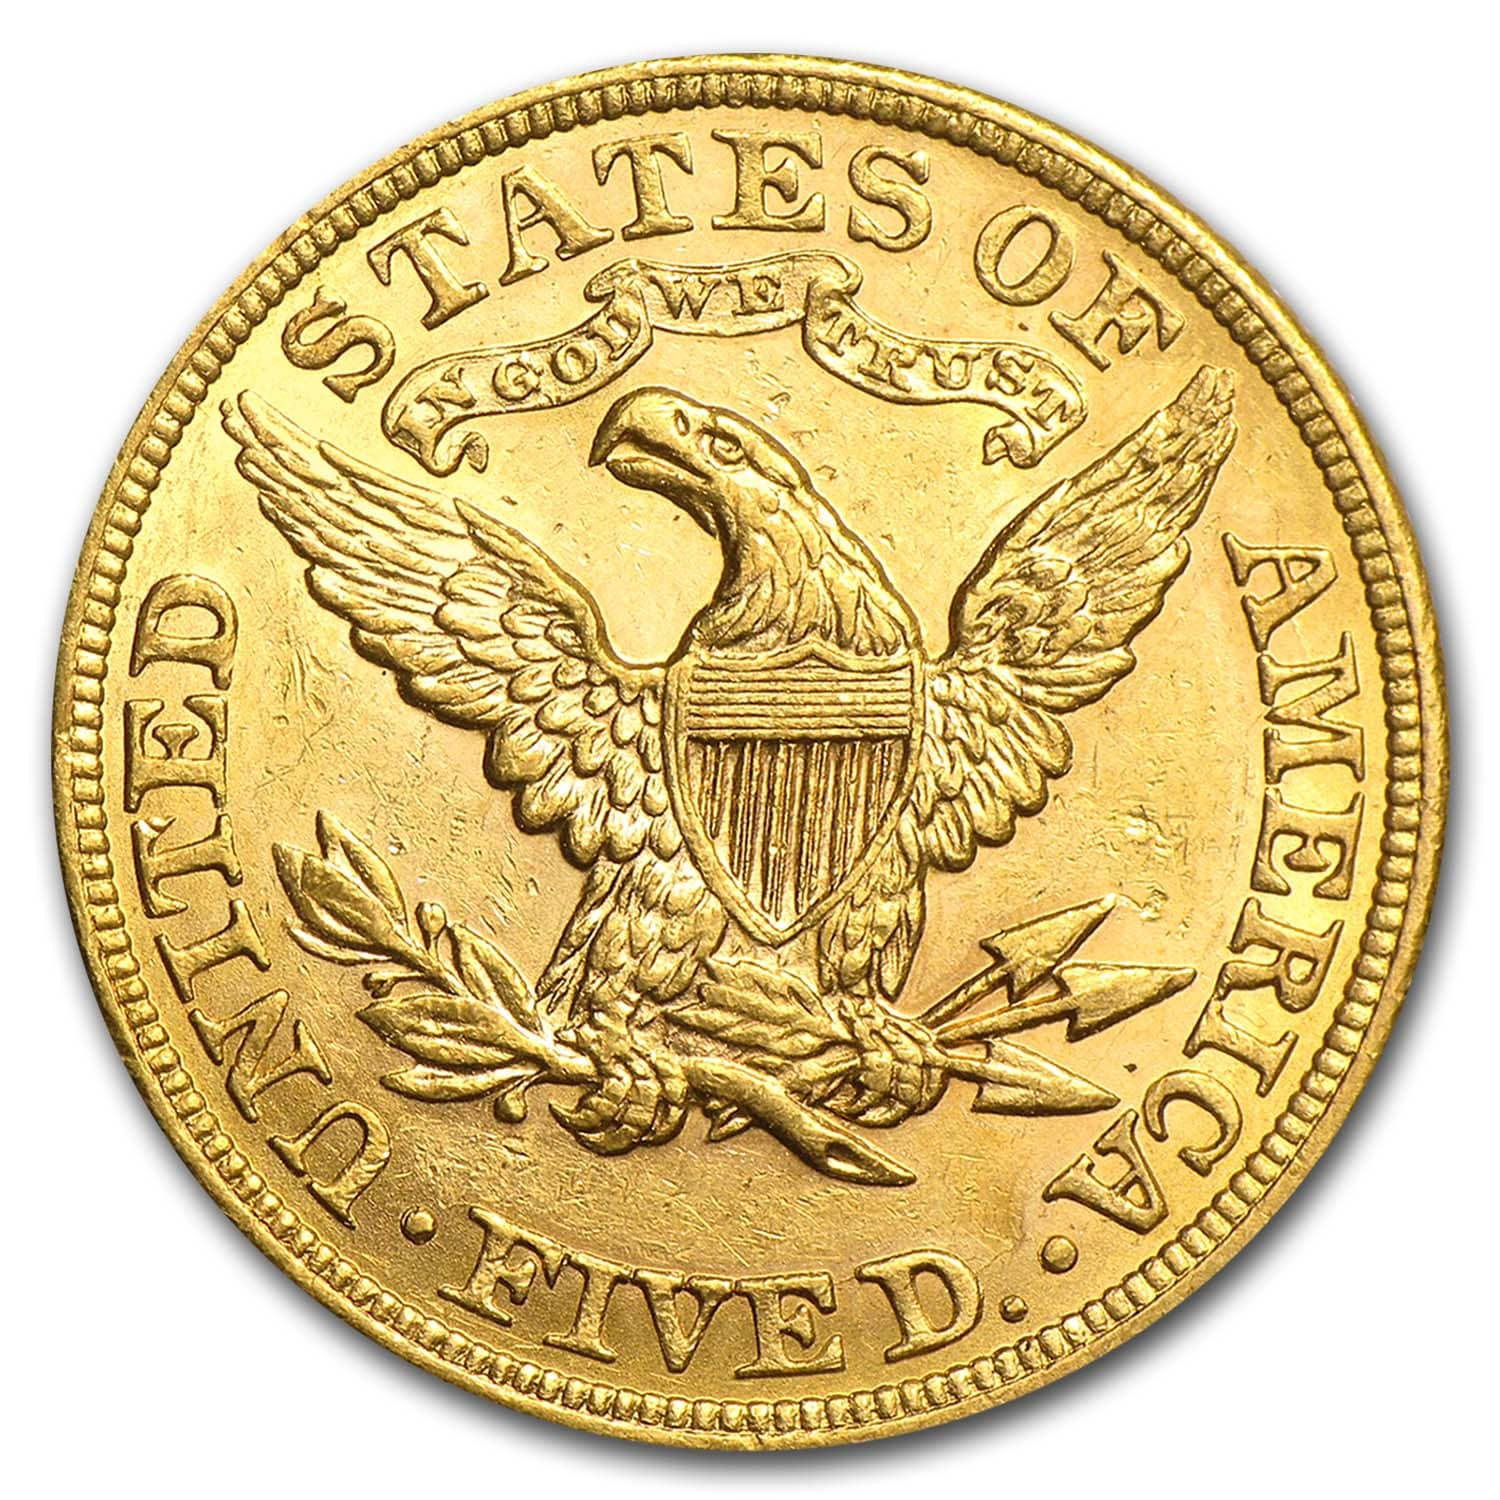 $5 Liberty Gold Half Eagle Almost Uncirculated